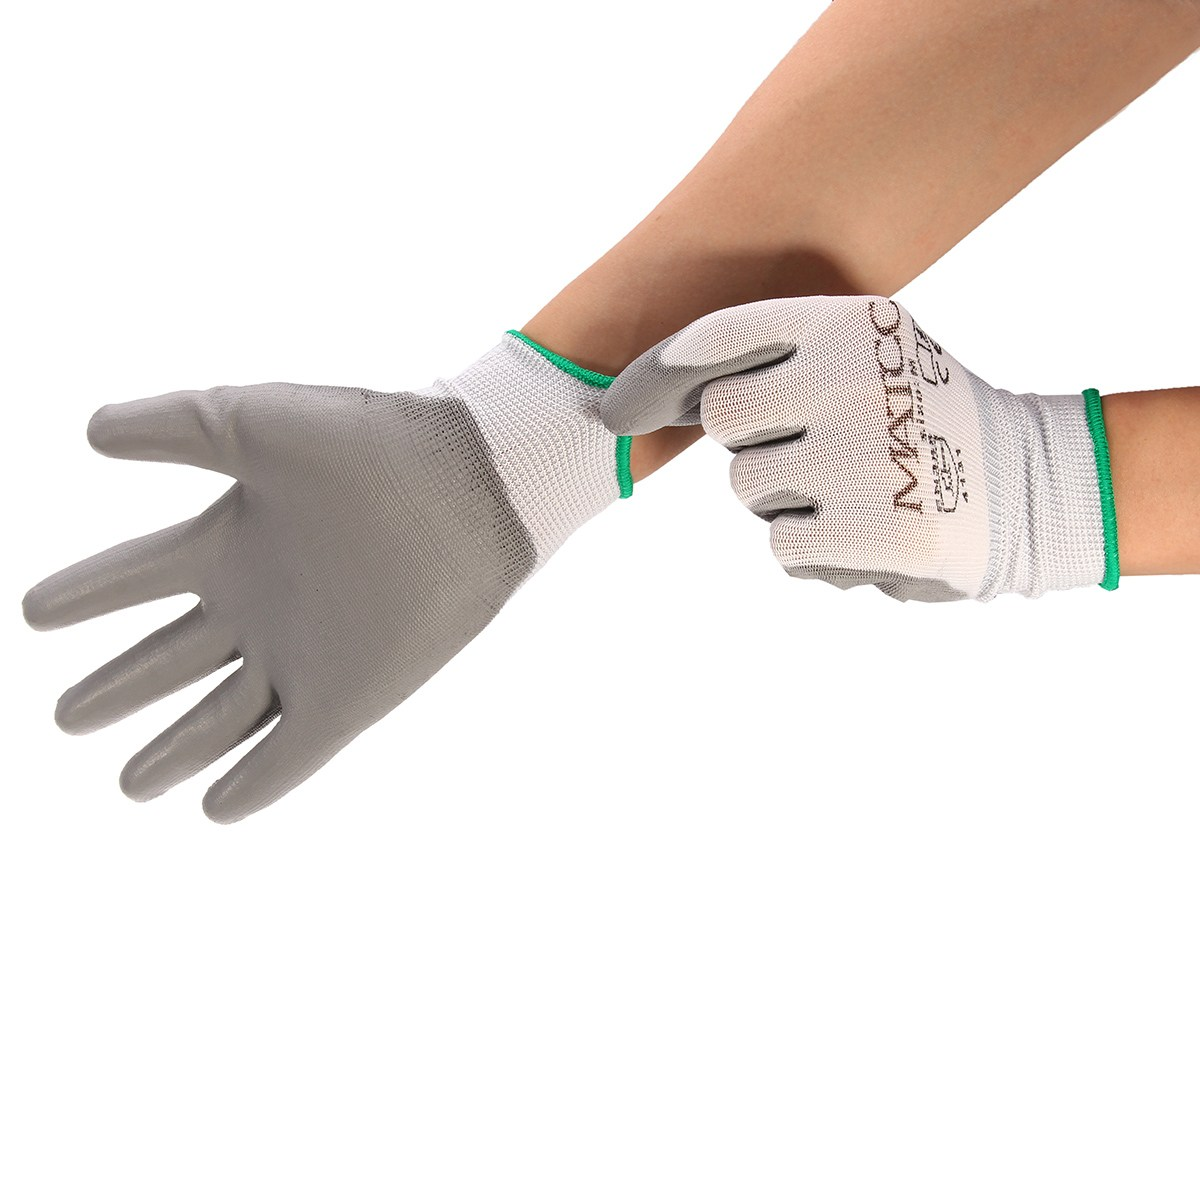 цена на NEW Safurance 12Pairs PU Nitrile Coated Safety Work Gloves Garden Builders Grip Size M/L/XL Workplace Safety Protection